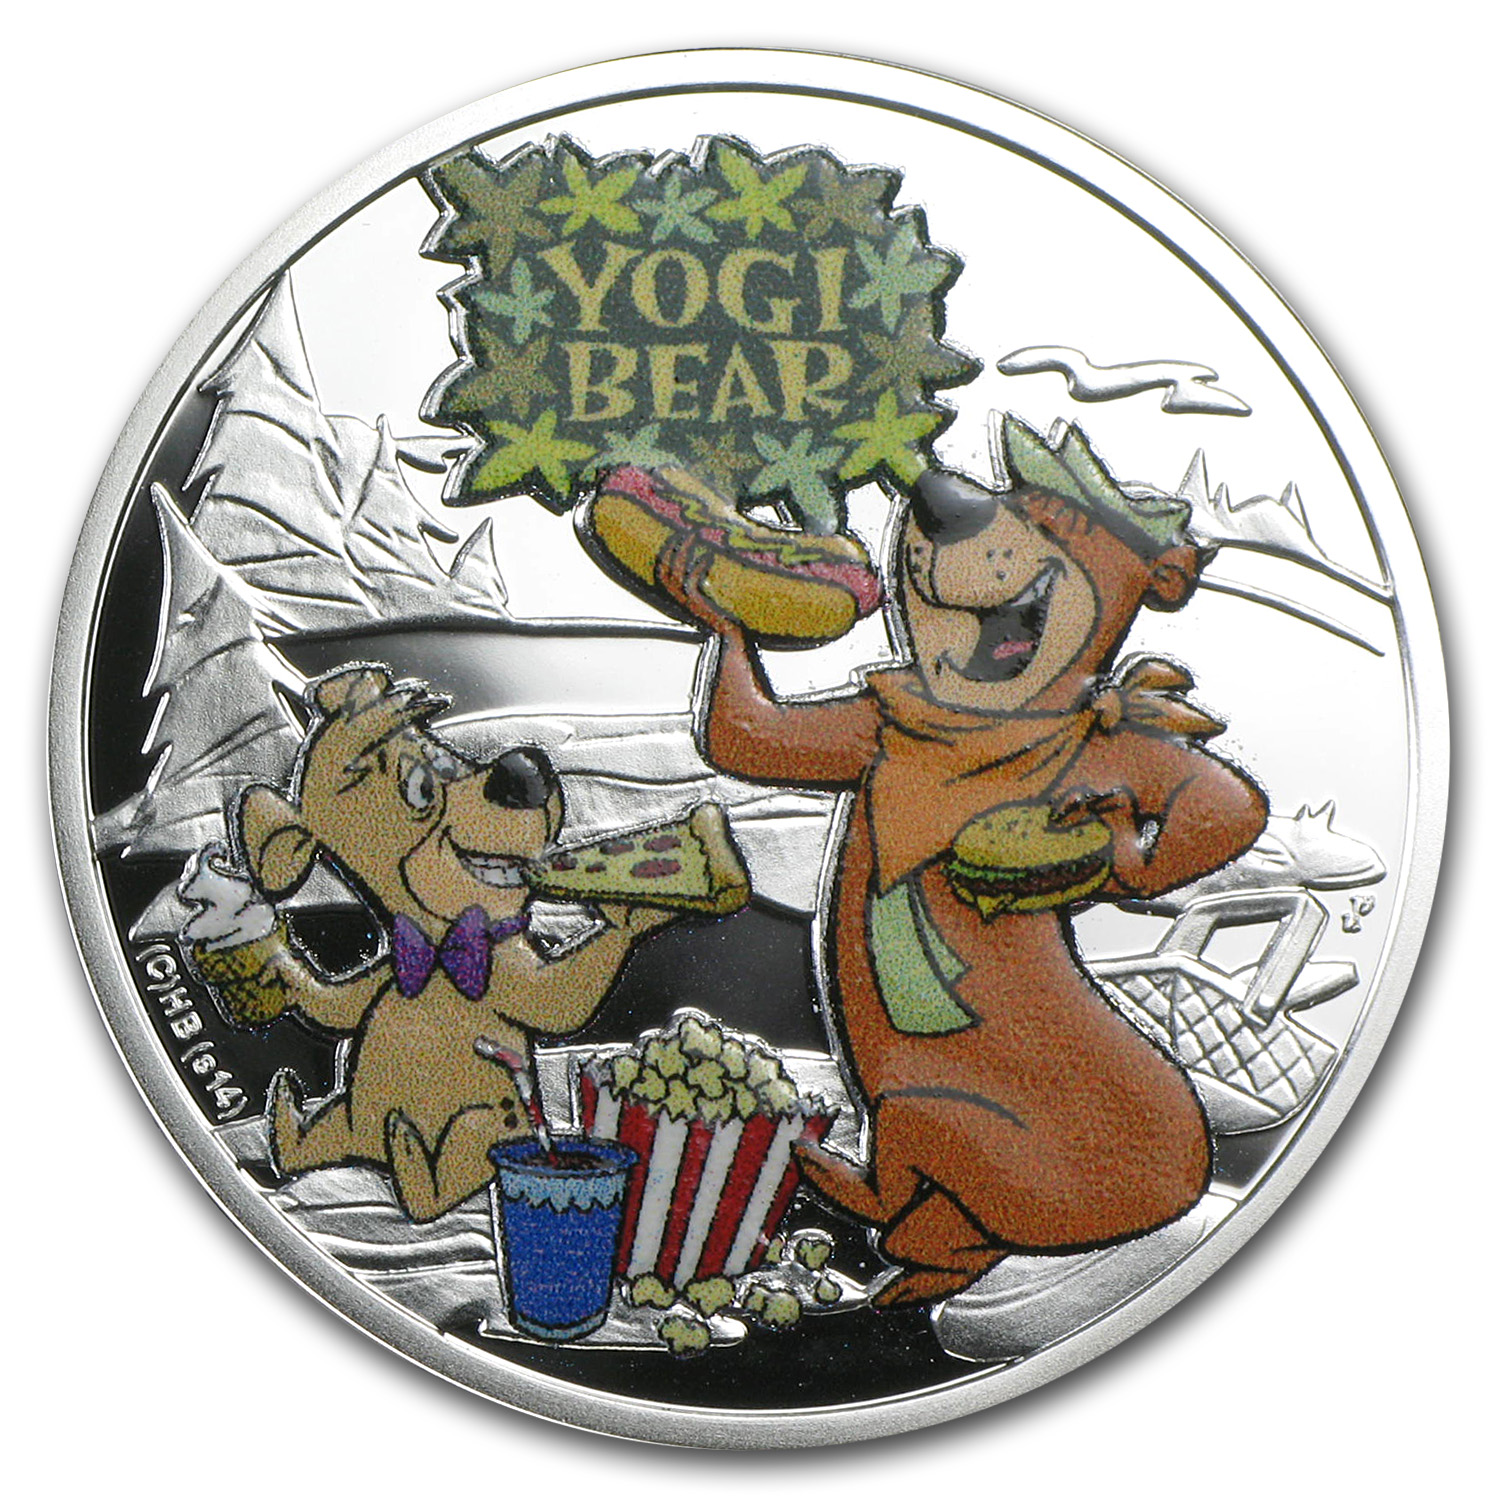 2014 Niue Proof Silver $1 Cartoon Characters Yogi Bear